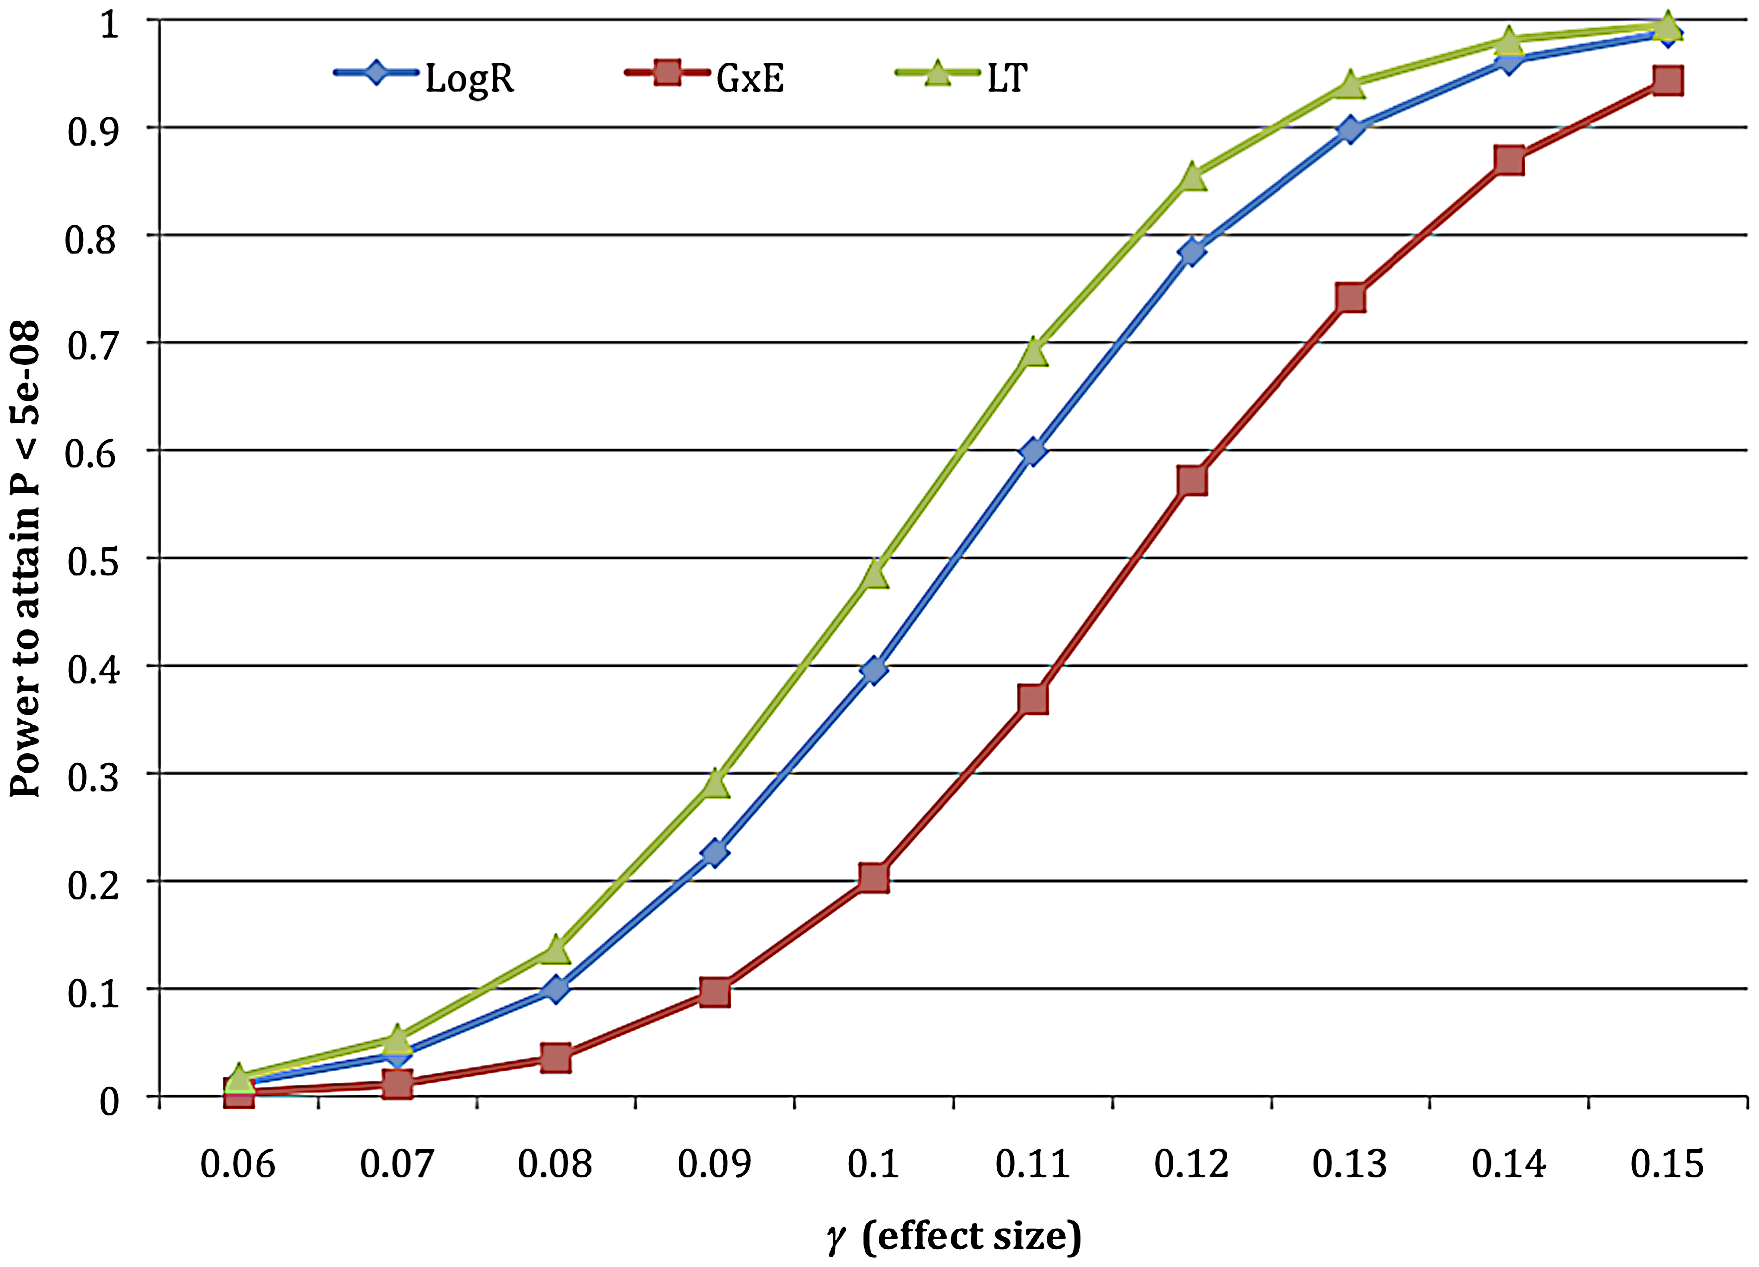 Power calculations for LogR, G+GxE, and LT approaches in simulated data.